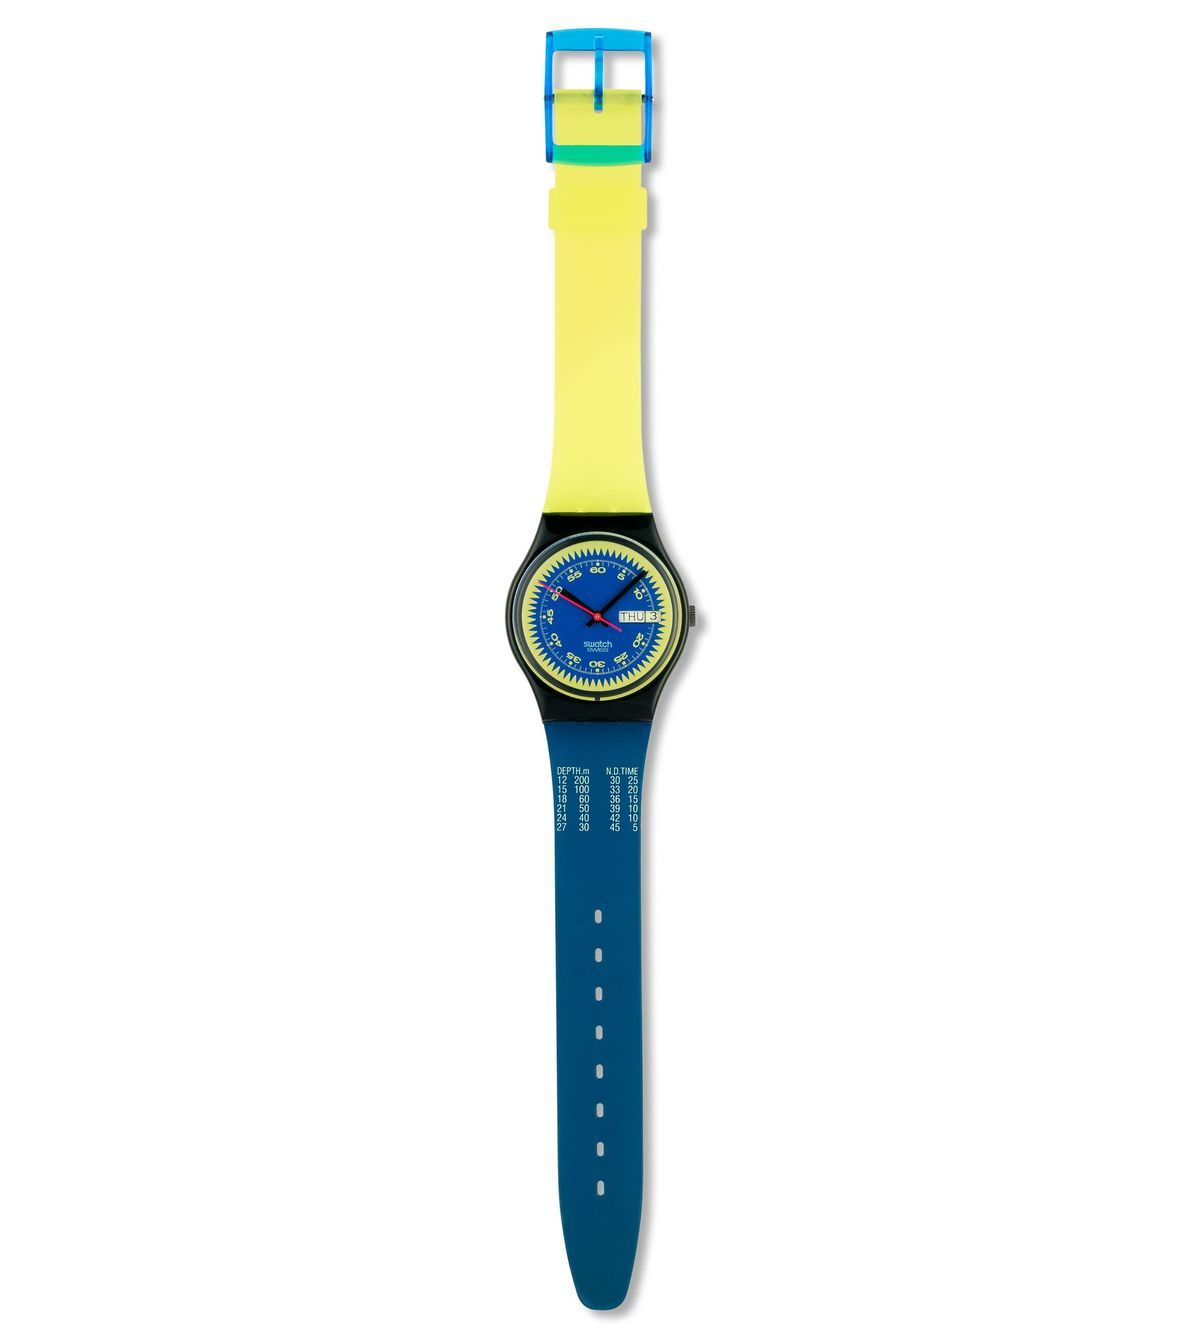 BLUE NEPTUN - GB718